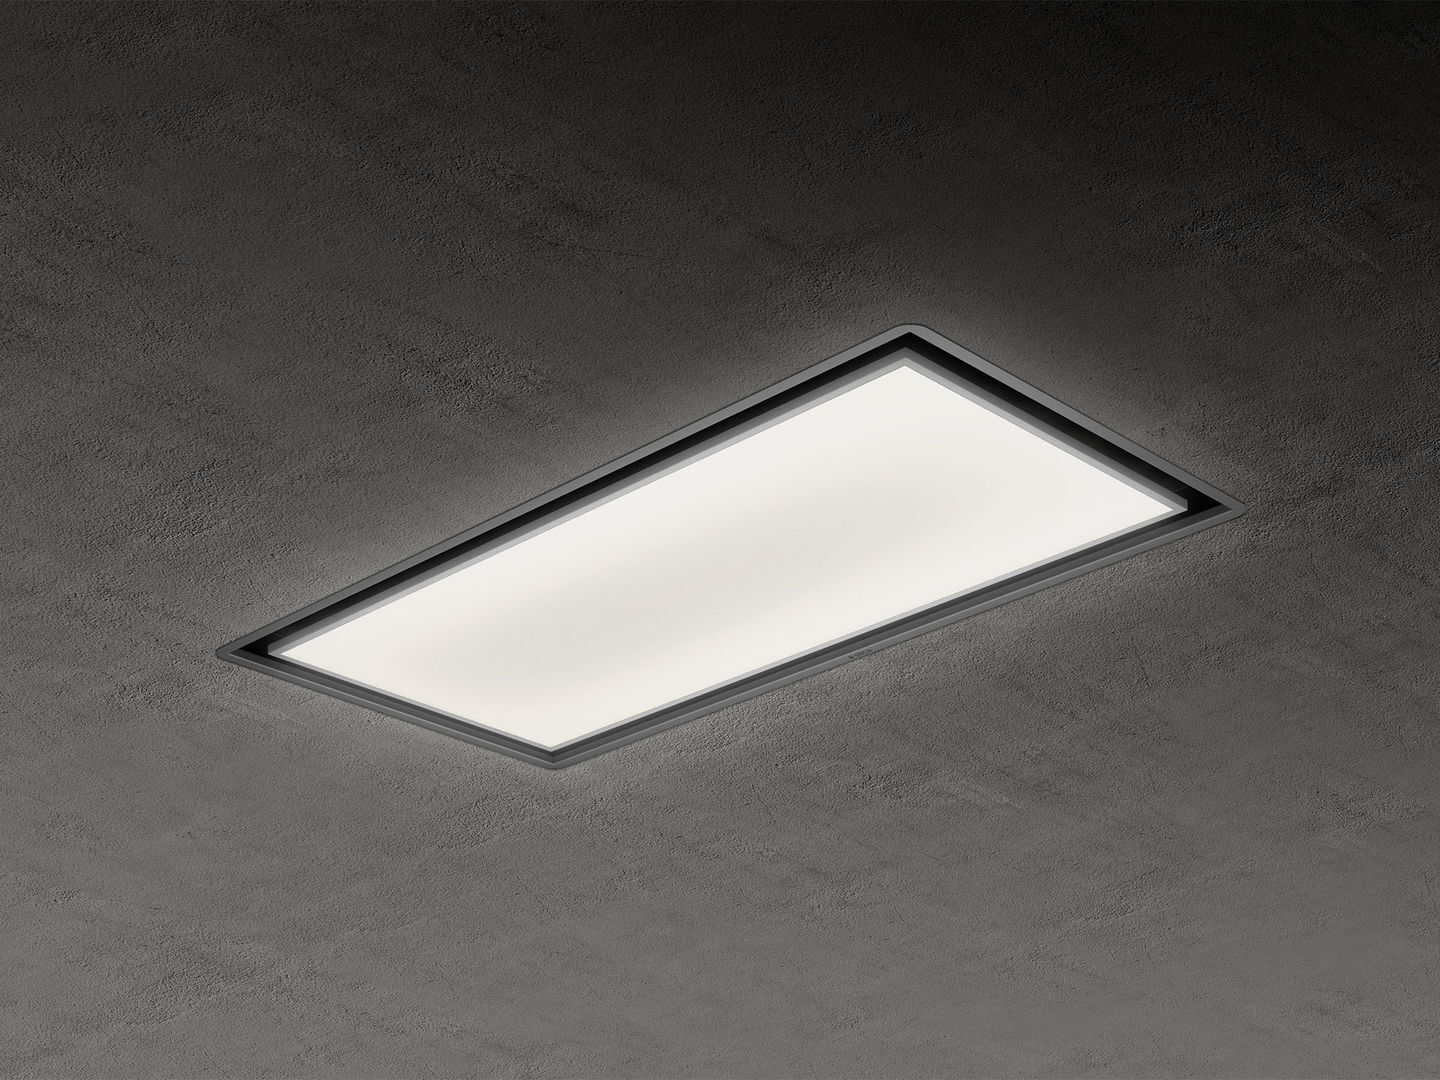 Elica SKYDOME-RM Ceiling hood for use with Separate motor